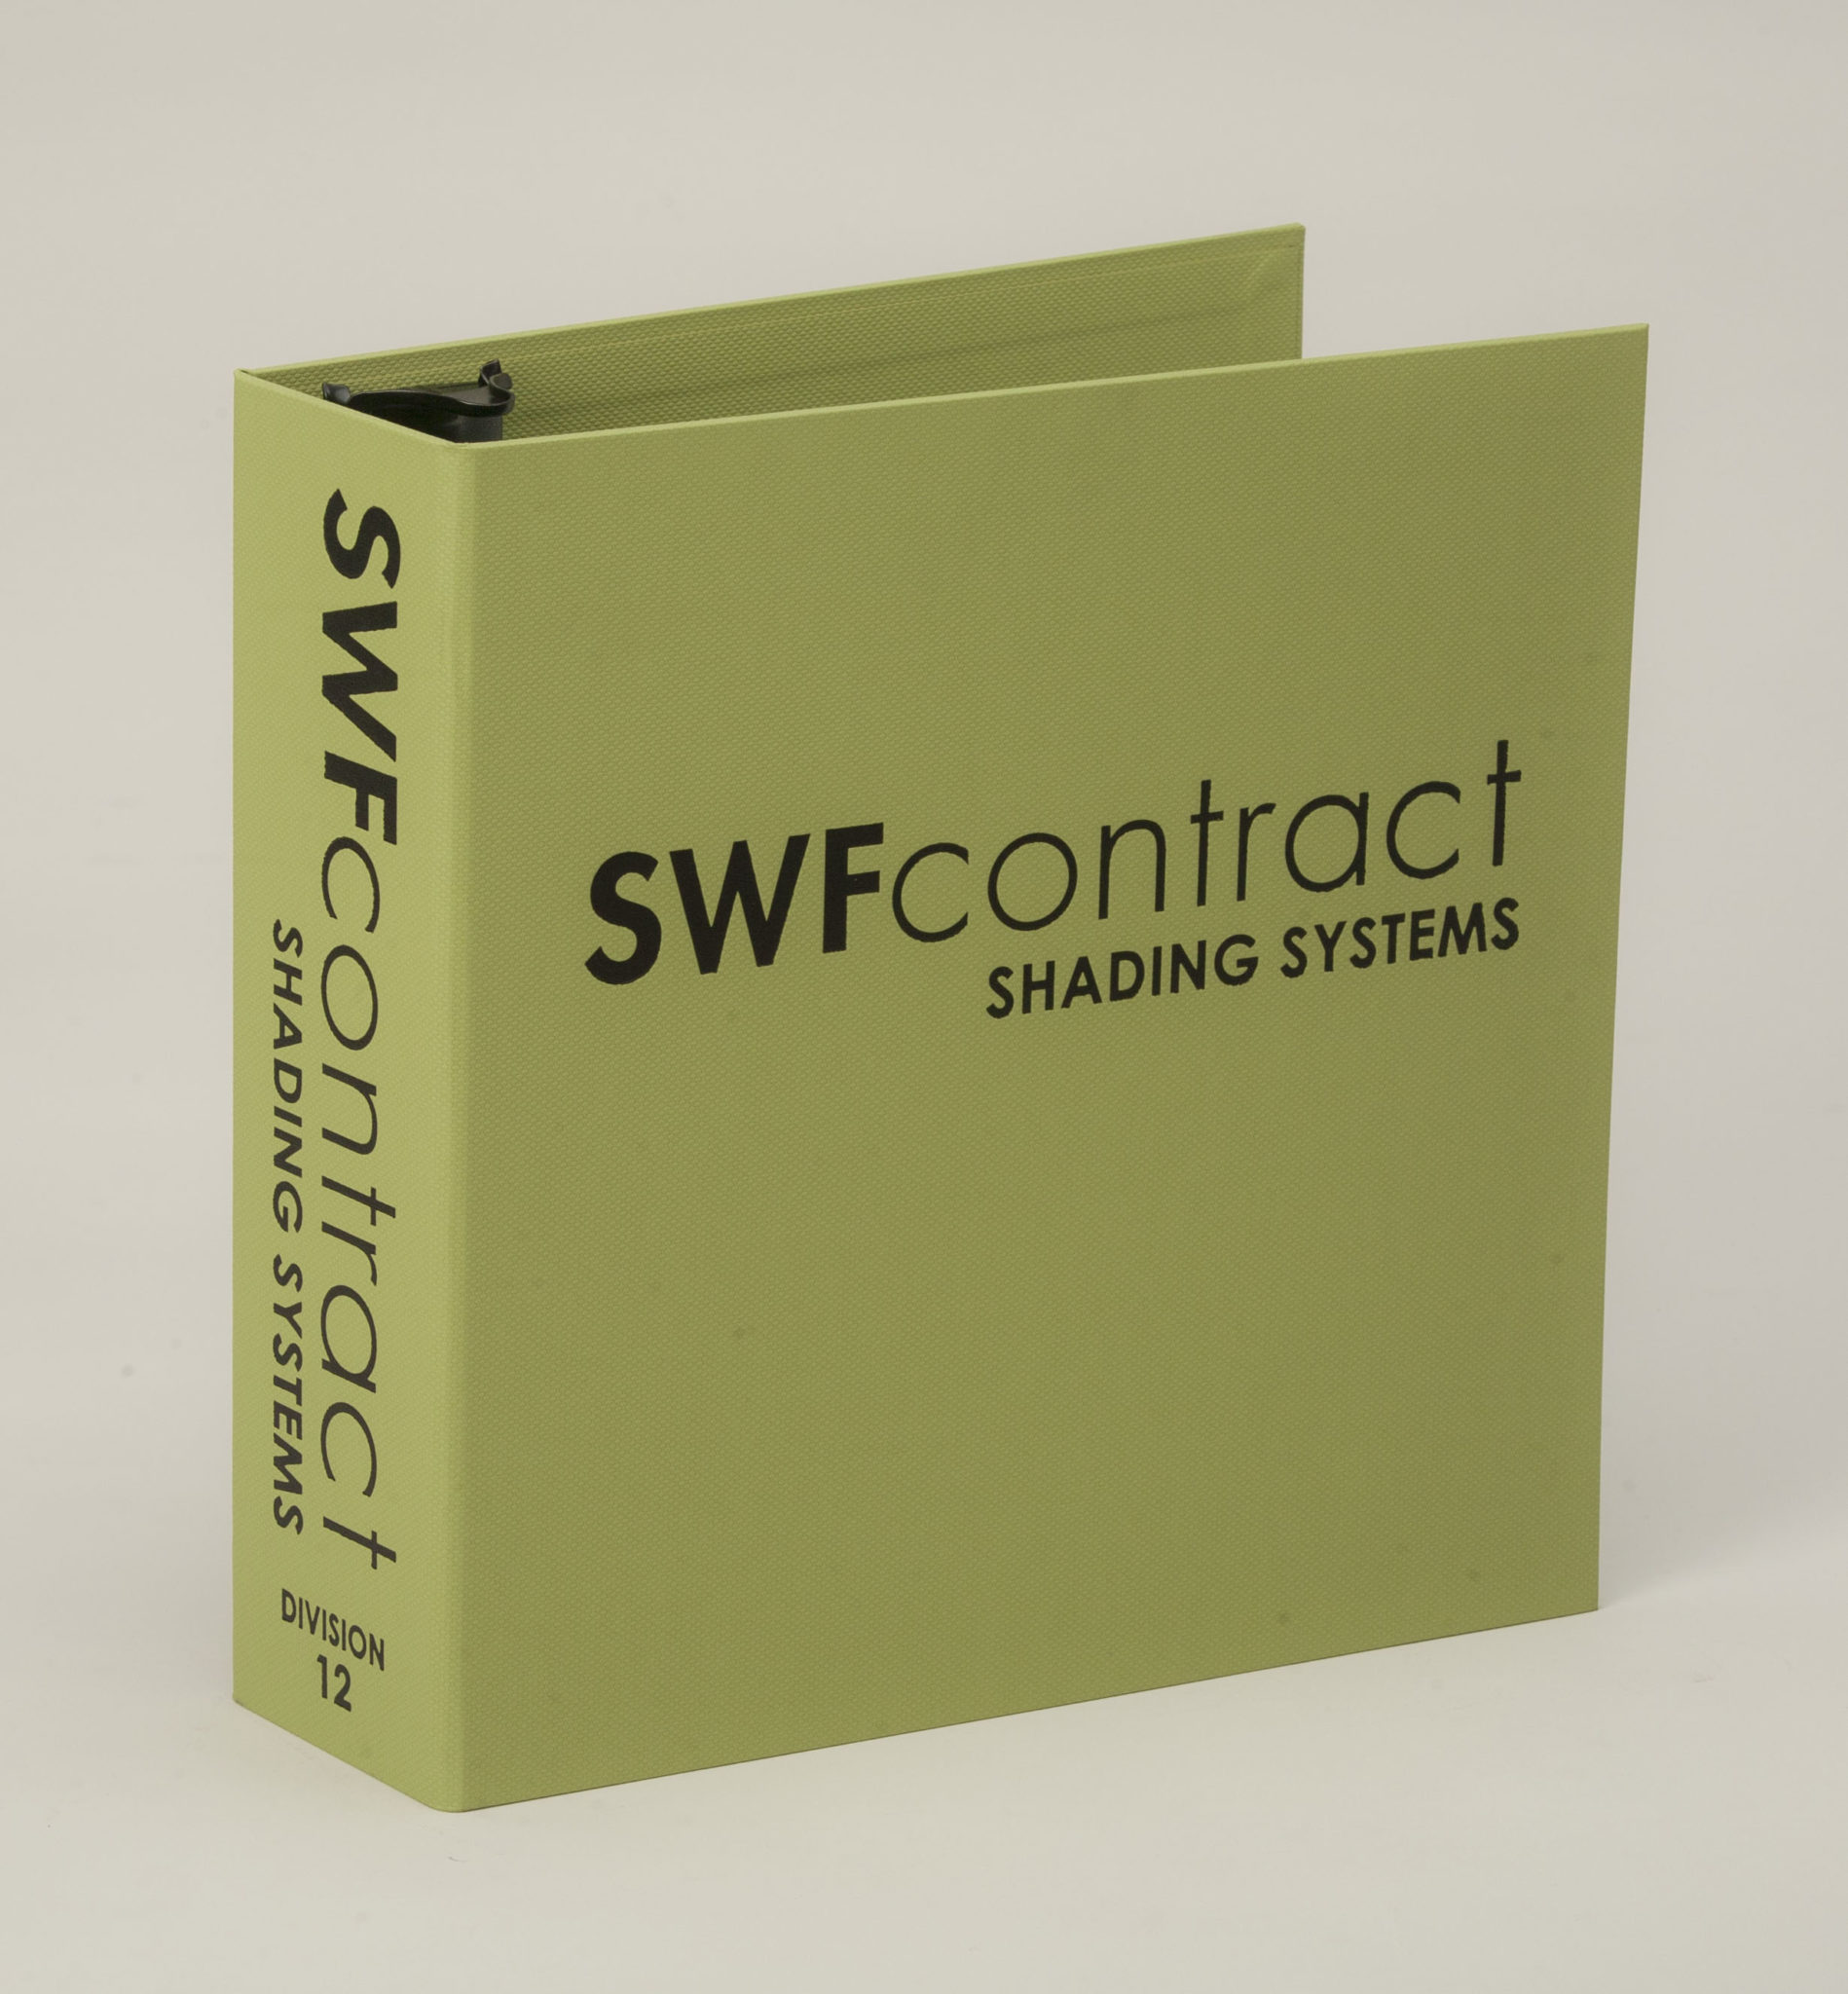 Case Wrapped 3 Ring Binder SWF Contract Shading Systems